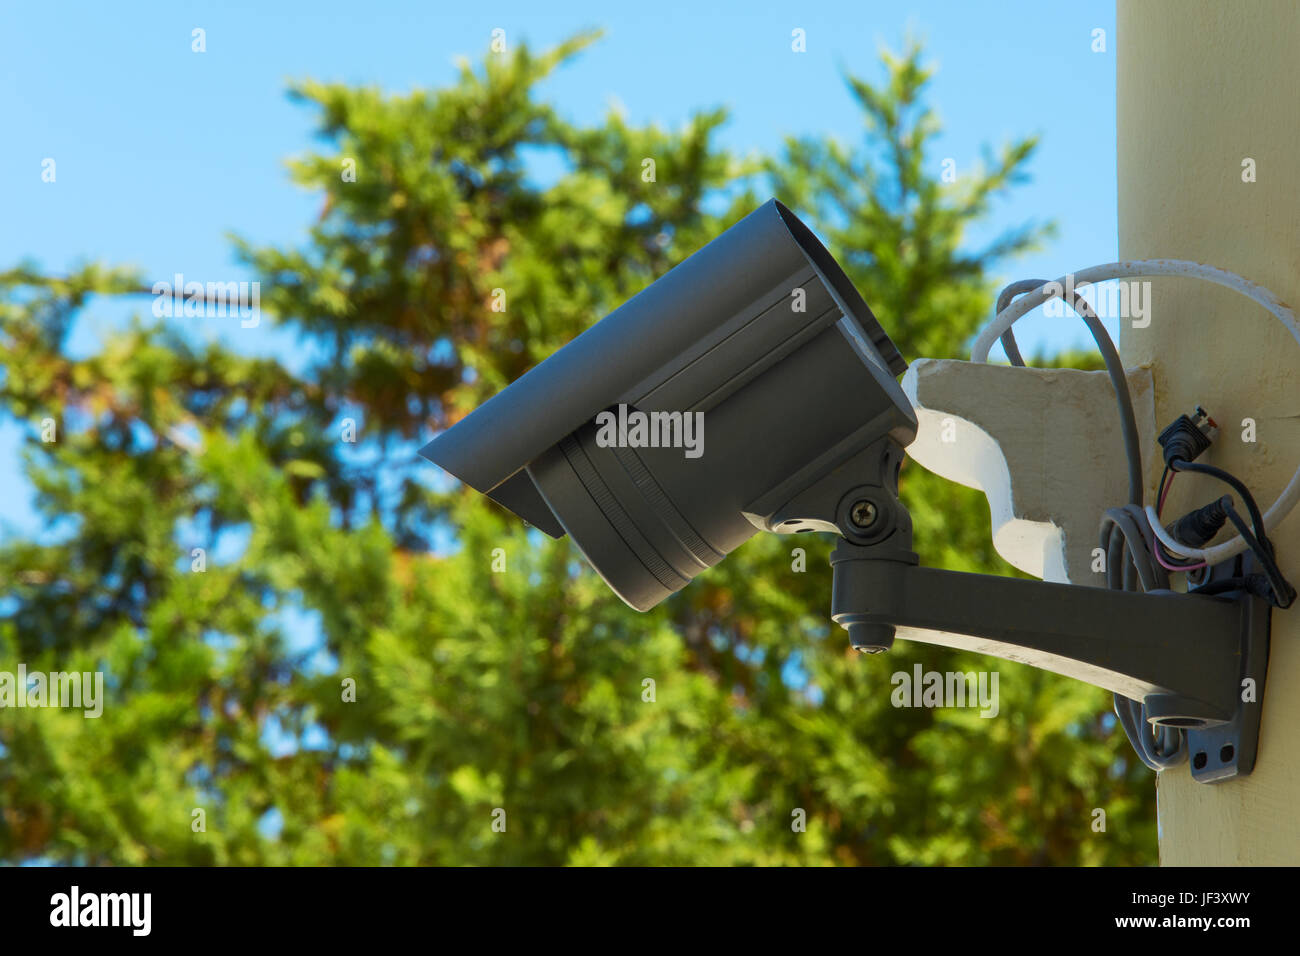 CCTV camera mounted on a building wall Stock Photo